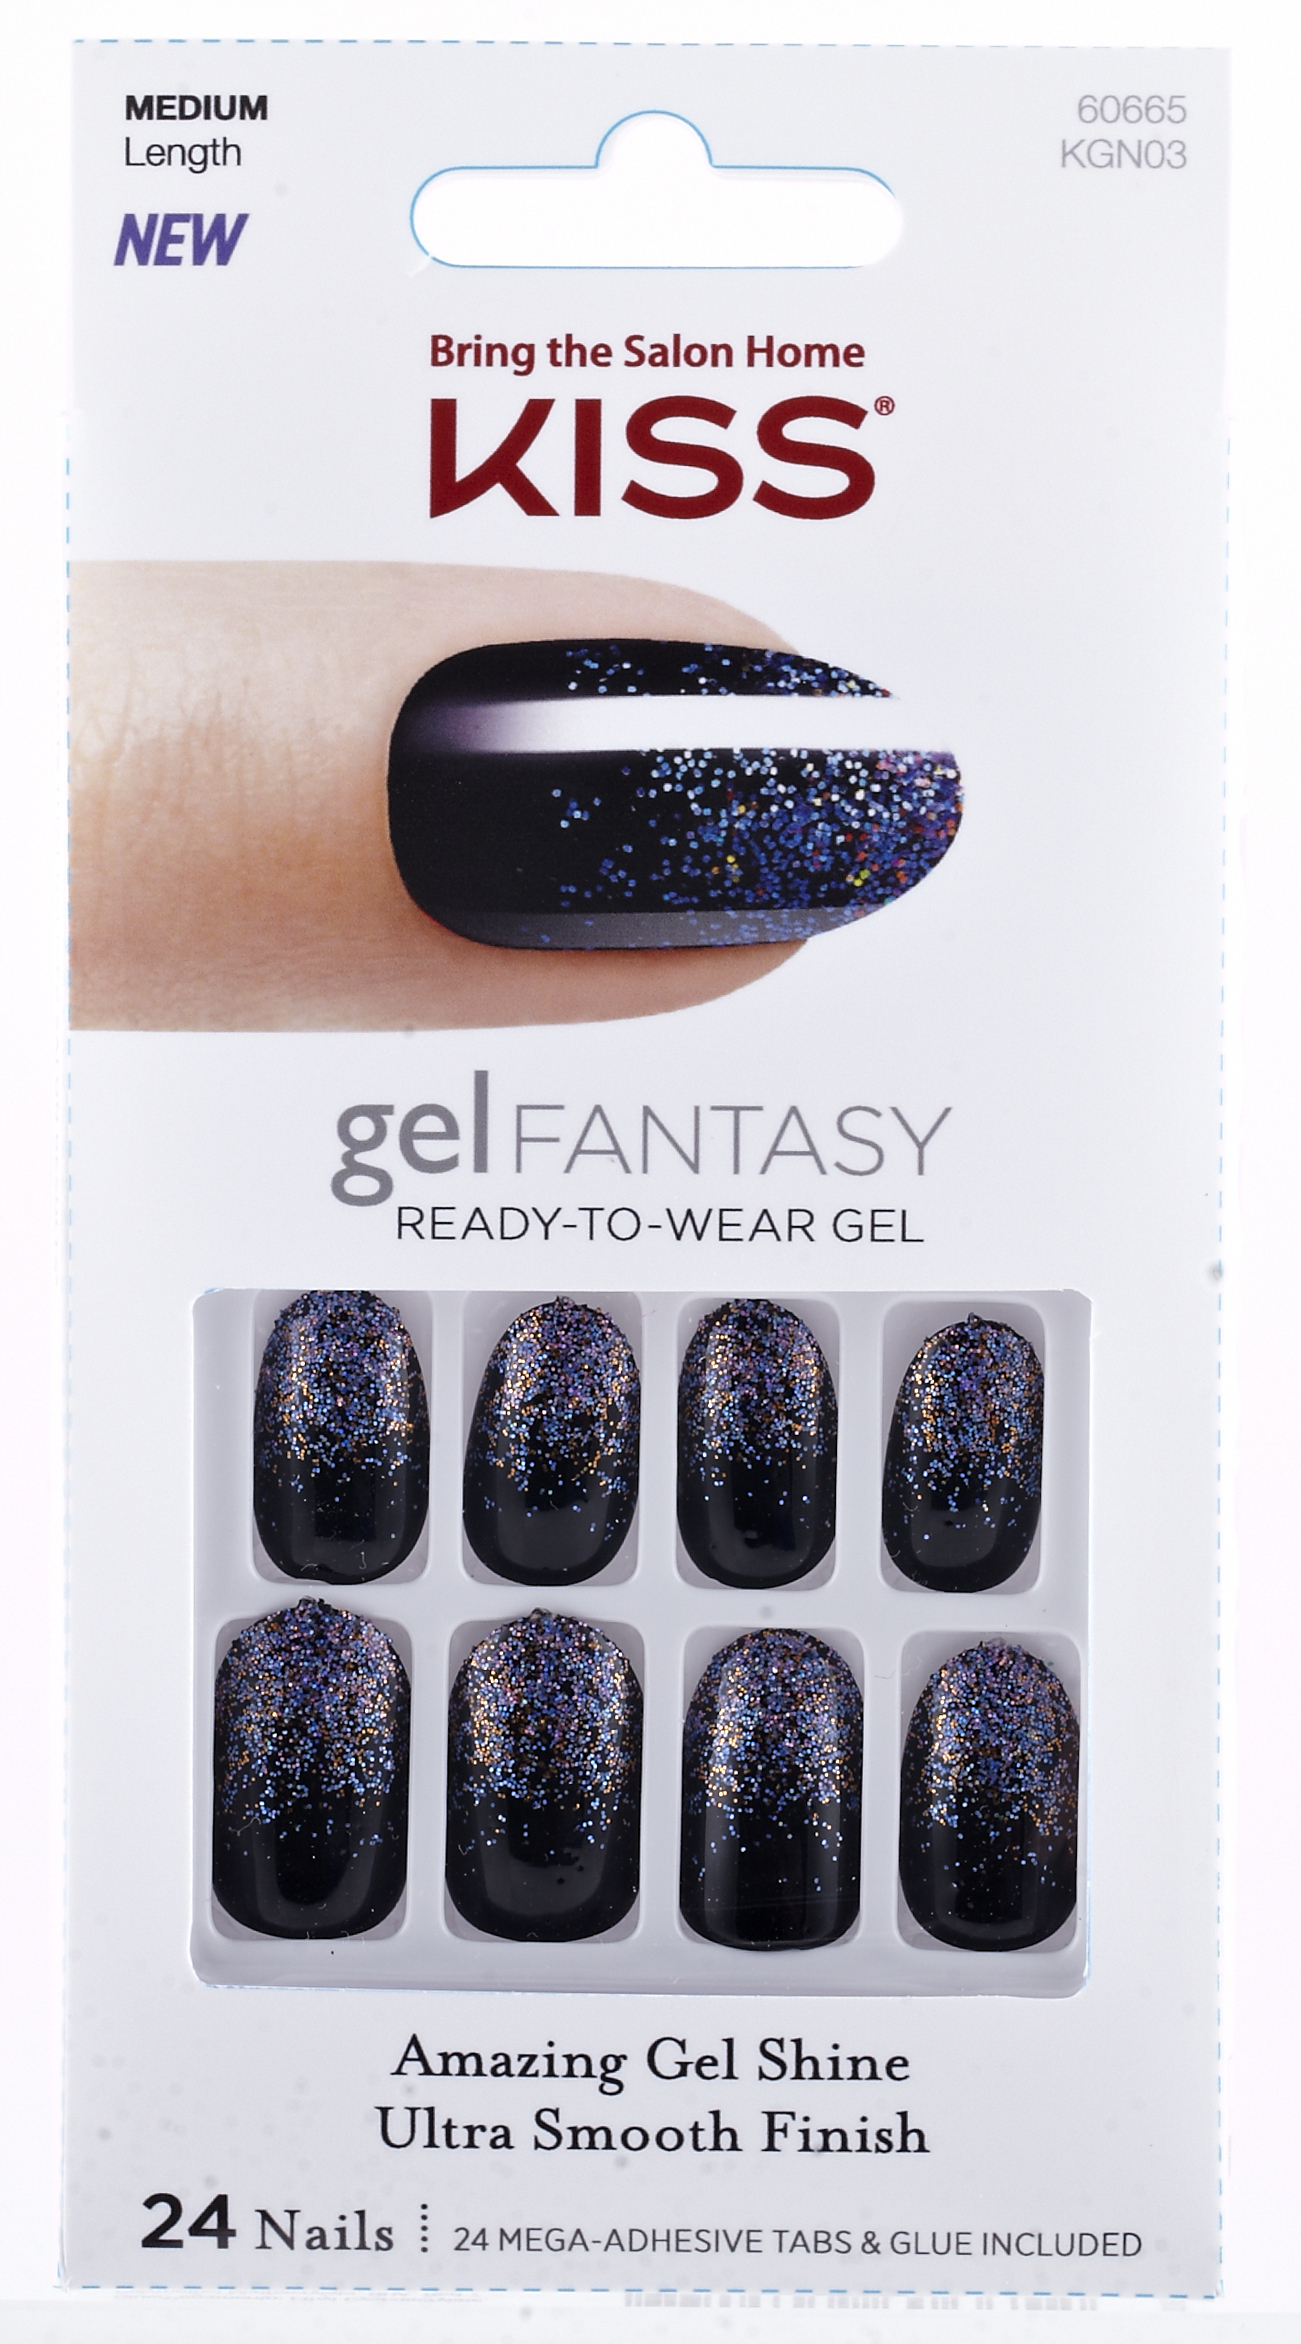 Kiss Gel Fantasy Nail Kit Image Gallery 6 Reviews